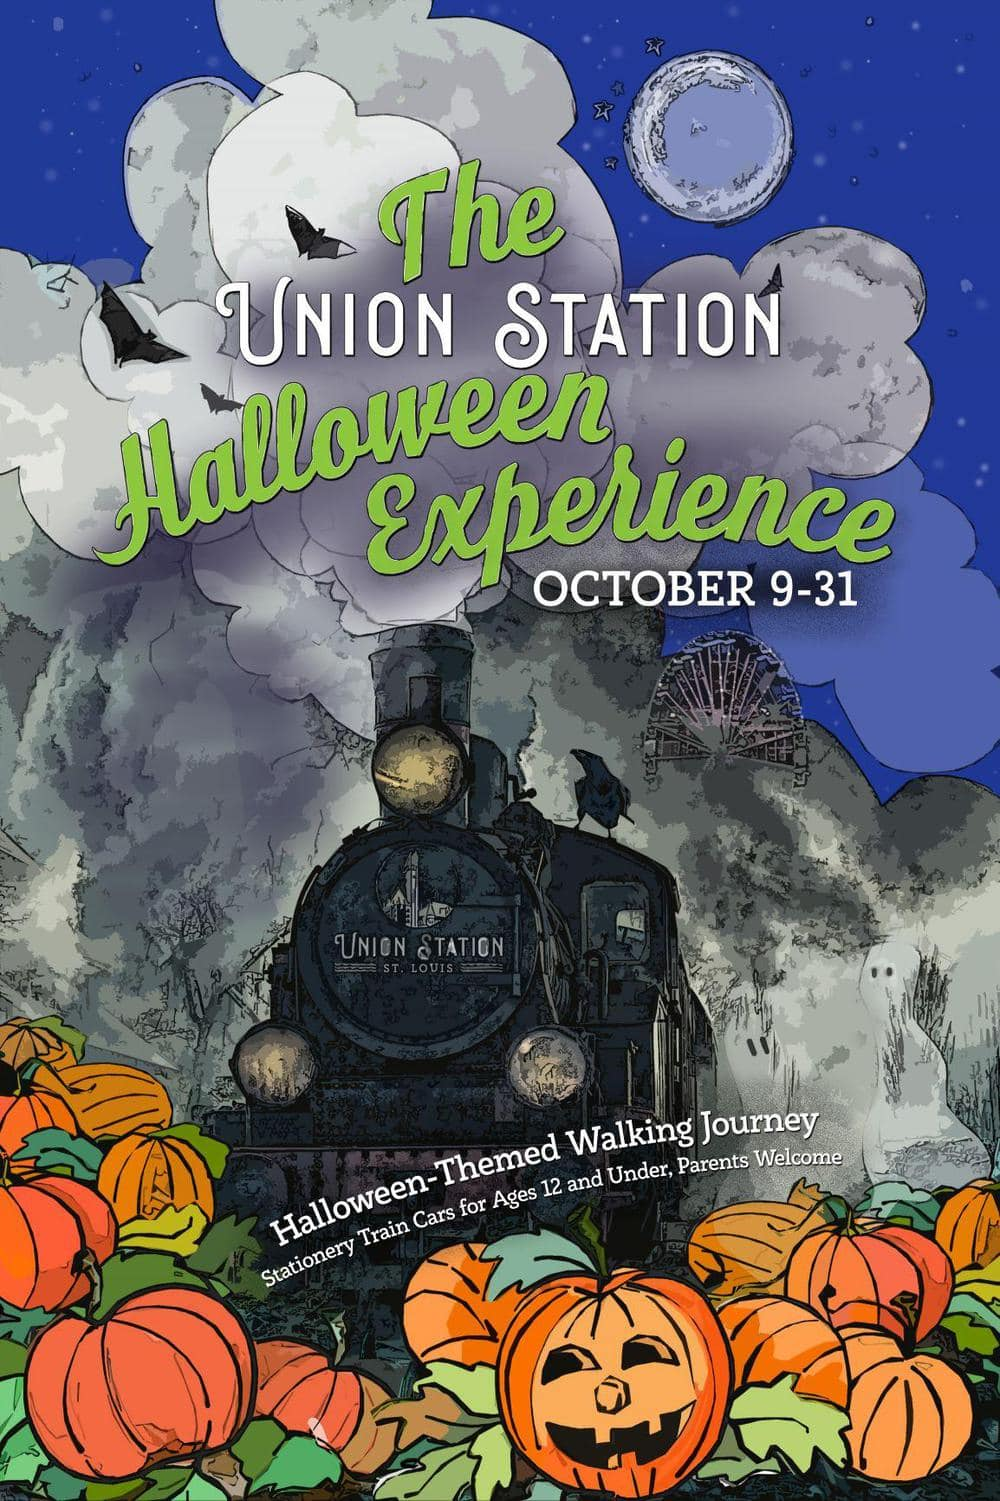 flyer announcing the St. Louis Union Station Halloween Experience